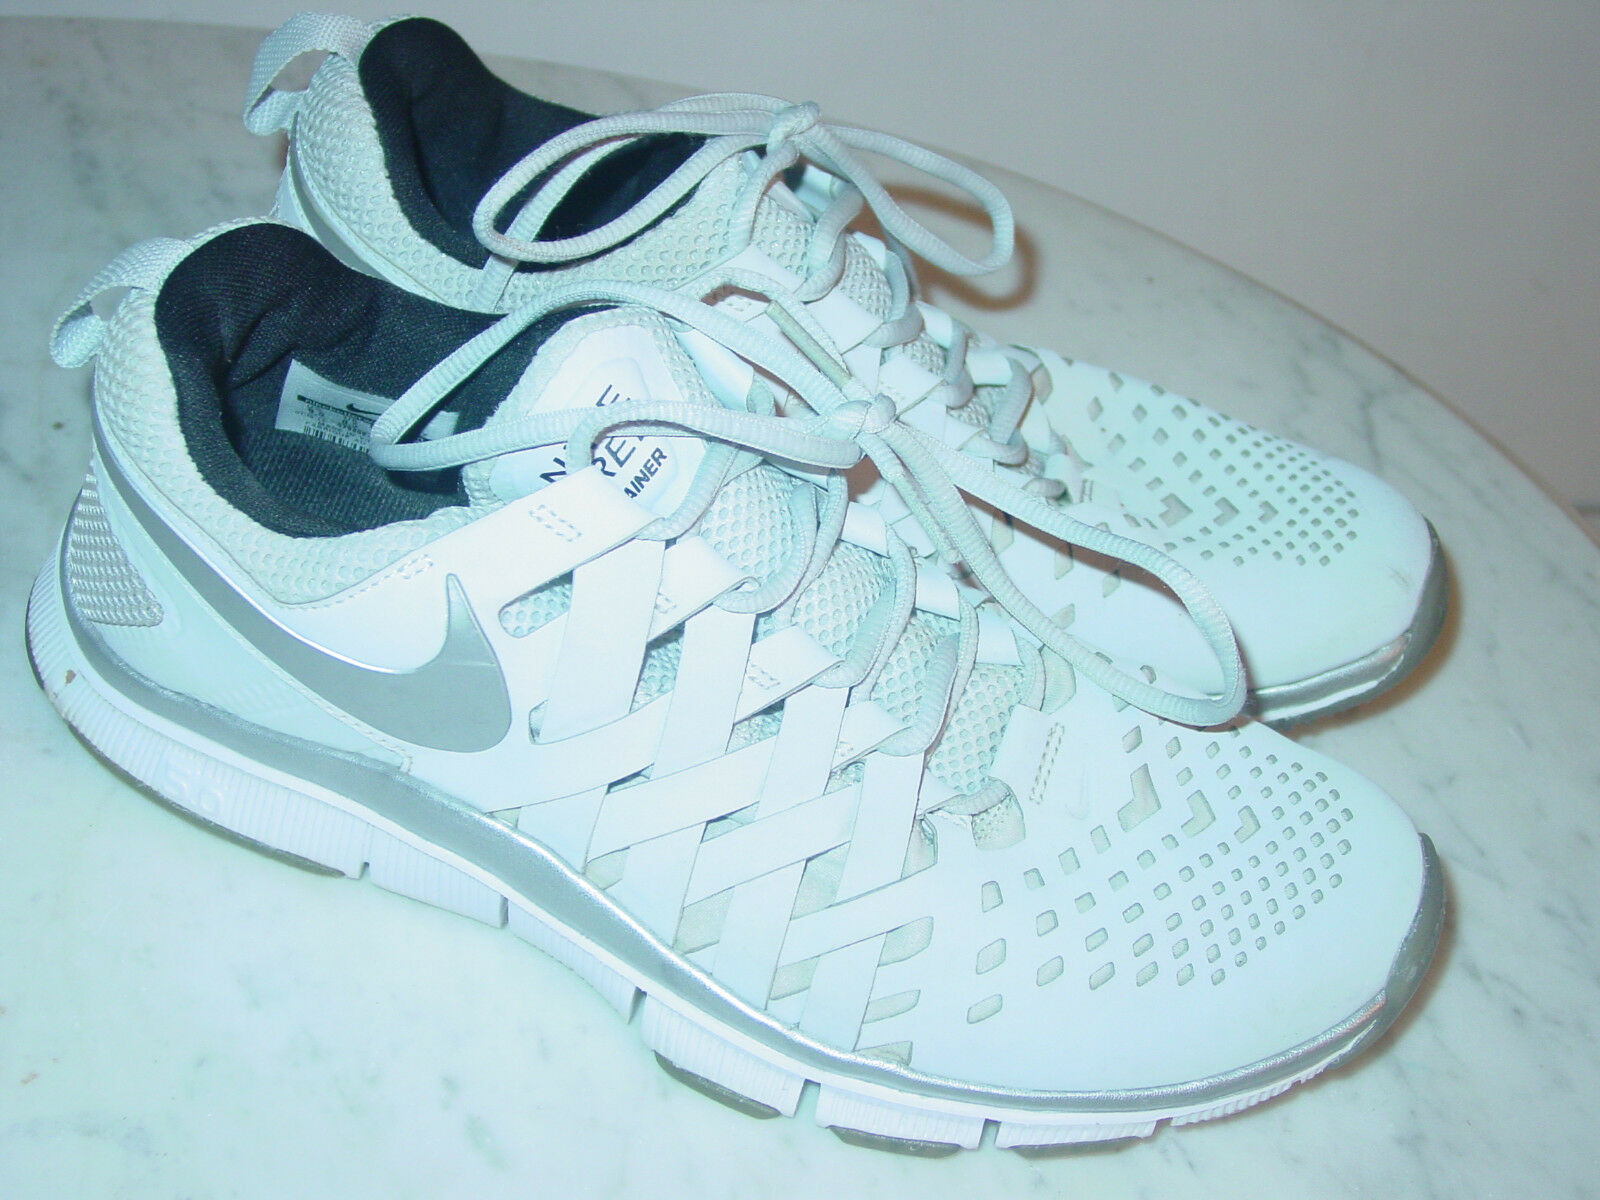 cf6bcbc42b51 2013 Nike Free Trainer 5.0 Pure Platinum Silver Running shoes Size 9.5  160.00